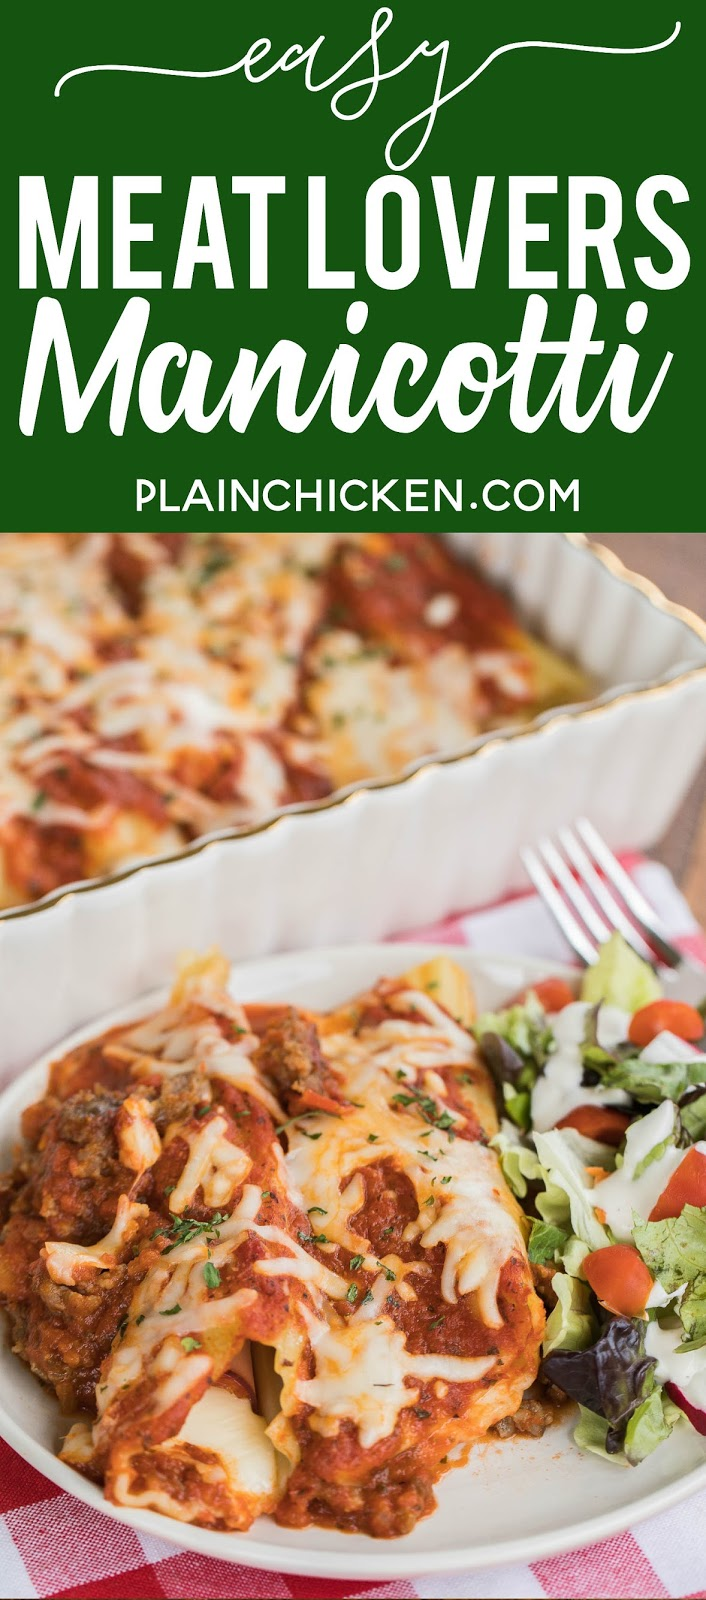 Easy meat lover's manicotti recipe: Manicotti stuffed with cheese, ham, and pepperoni and baked in a quick meat sauce. Super easy and DELICIOUS stuffed pasta casserole. Use string cheese to easily fill cooked manicotti noodles. It can be brought forward and refrigerated or frozen for later. All you need is a salad and some garlic bread for a quick weekday meal! # casserole # manicotti # pastacasero #cooked #freezermeal #makeaheadmeal